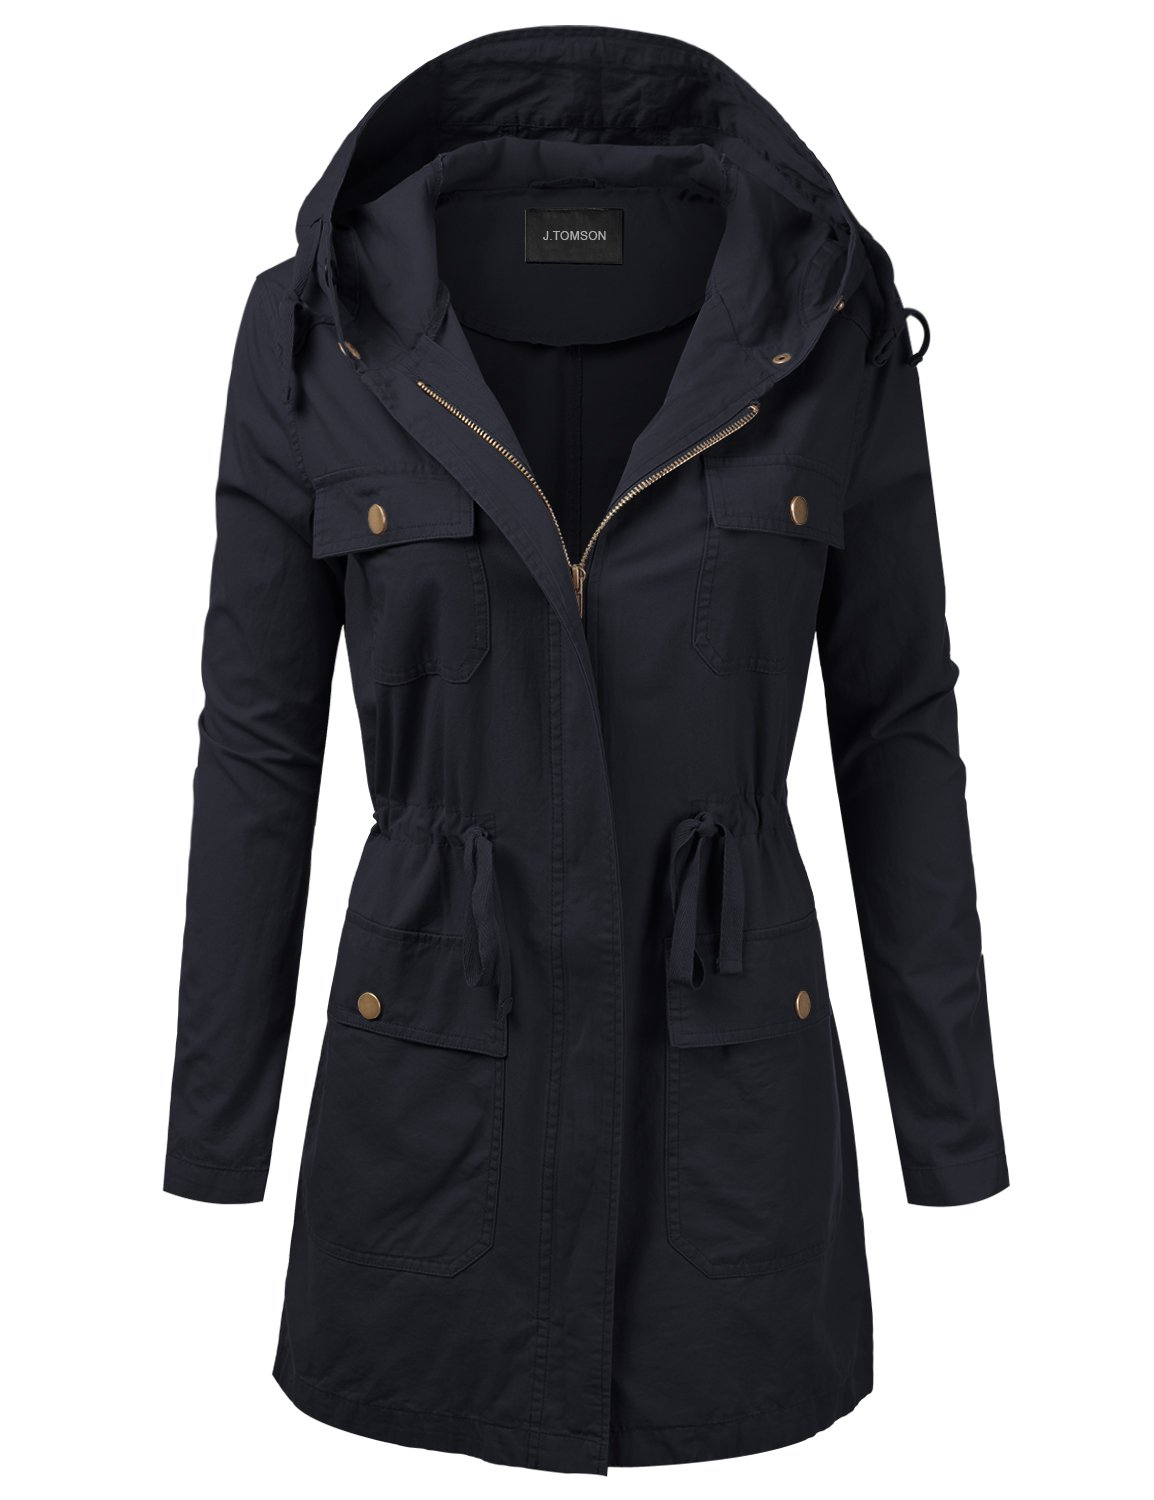 J.TOMSON Women's Woven Hooded Cotton Utility Jacket with Drawstring Waist Navy L